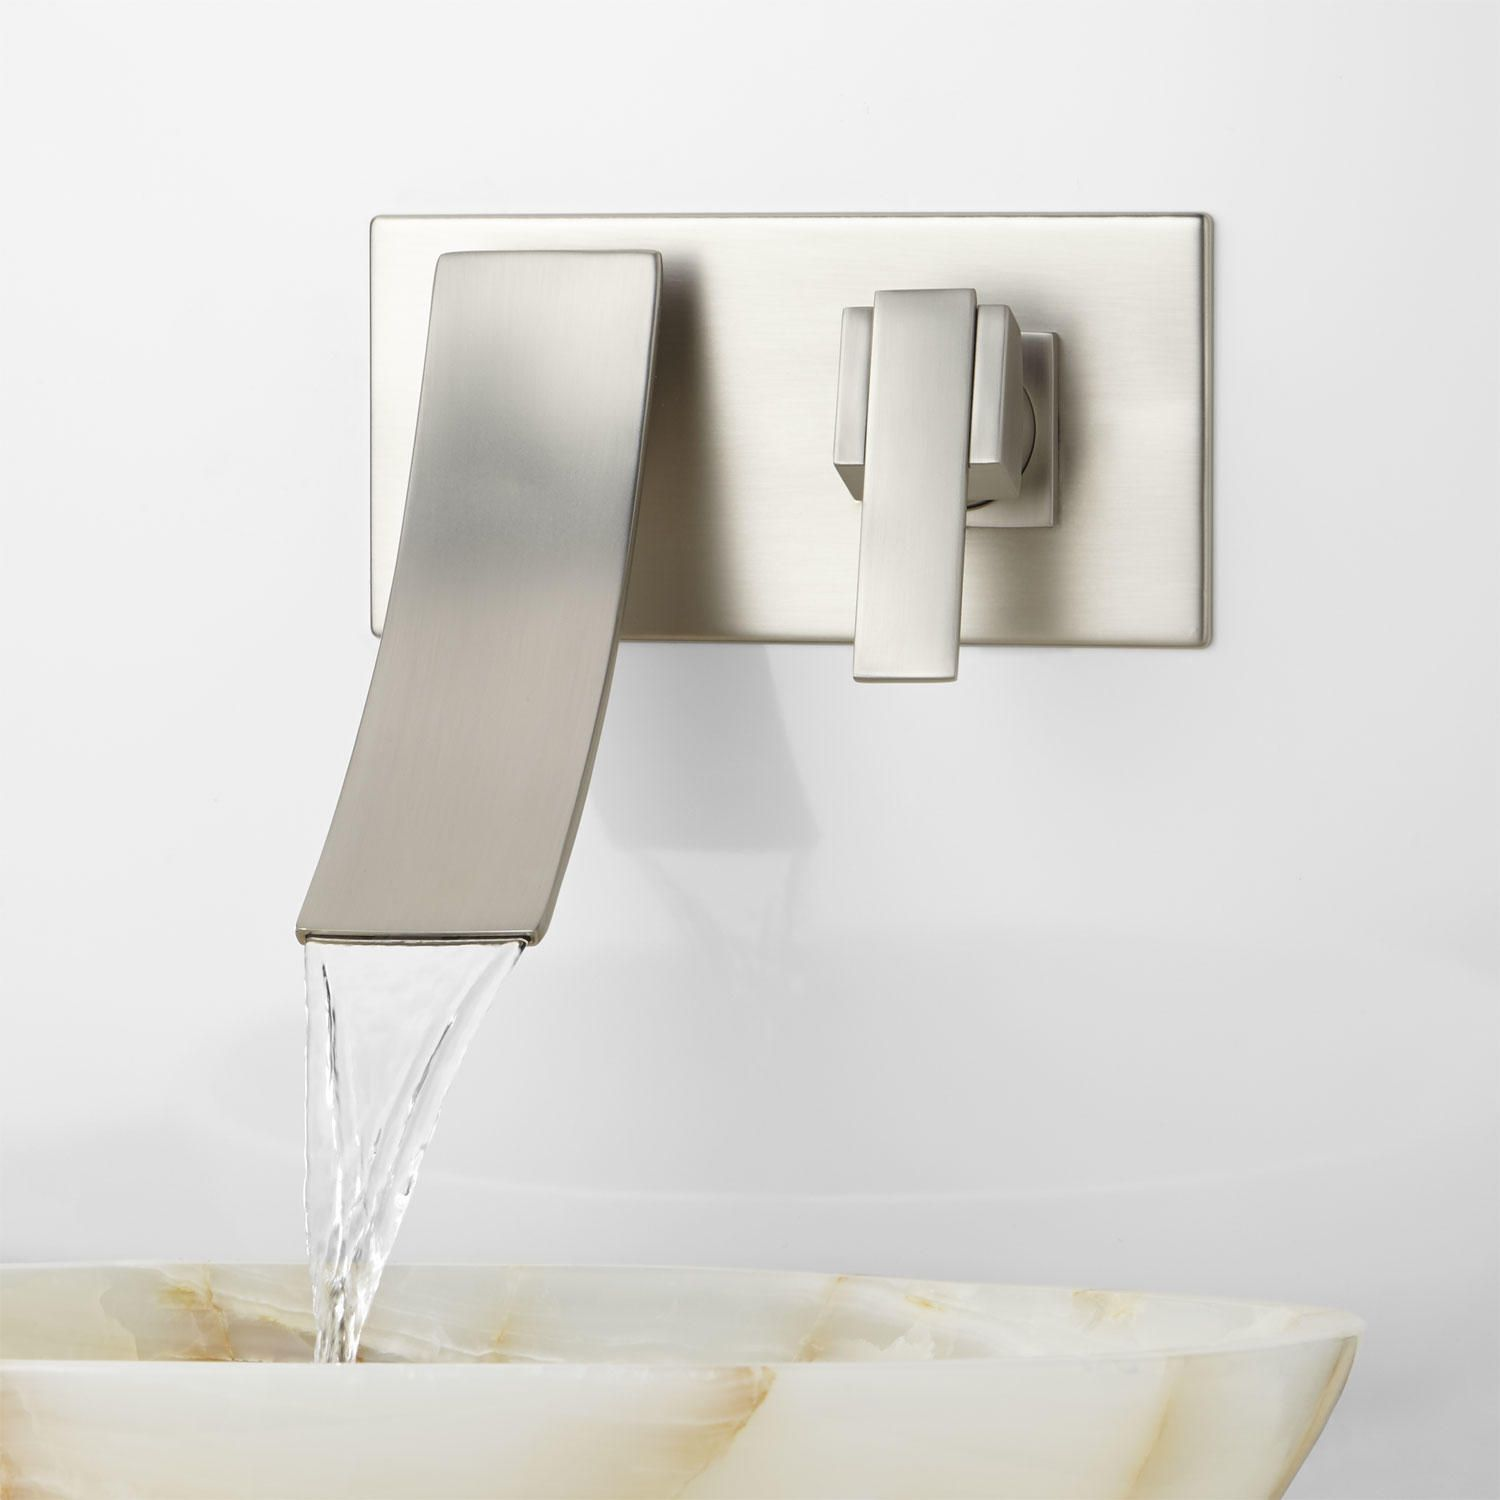 Arianna Wall-Mount Bathroom Faucet - Bathroom | Bathroom | Pinterest ...